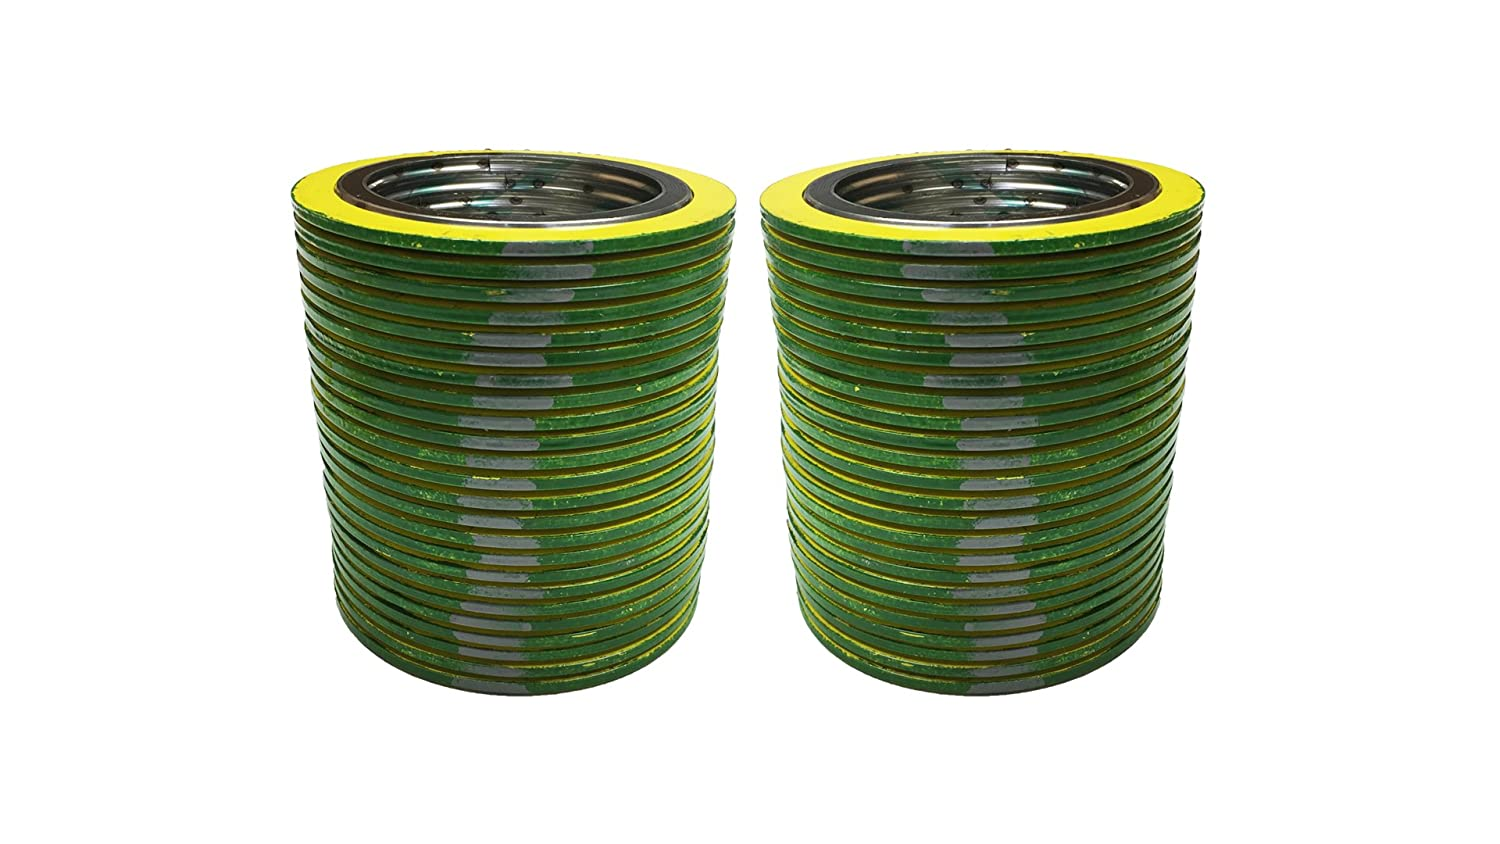 Pressure Class 300# for 2 Pipe Supplied by Sur-Seal Inc of NJ QTY: 48 for 2 Pipe Sterling Seal 90002316GR300X48 316L Stainless Steel spiral Wound Gasket with Flexible Graphite Filler Pack of 48 green Band with Grey Stripes